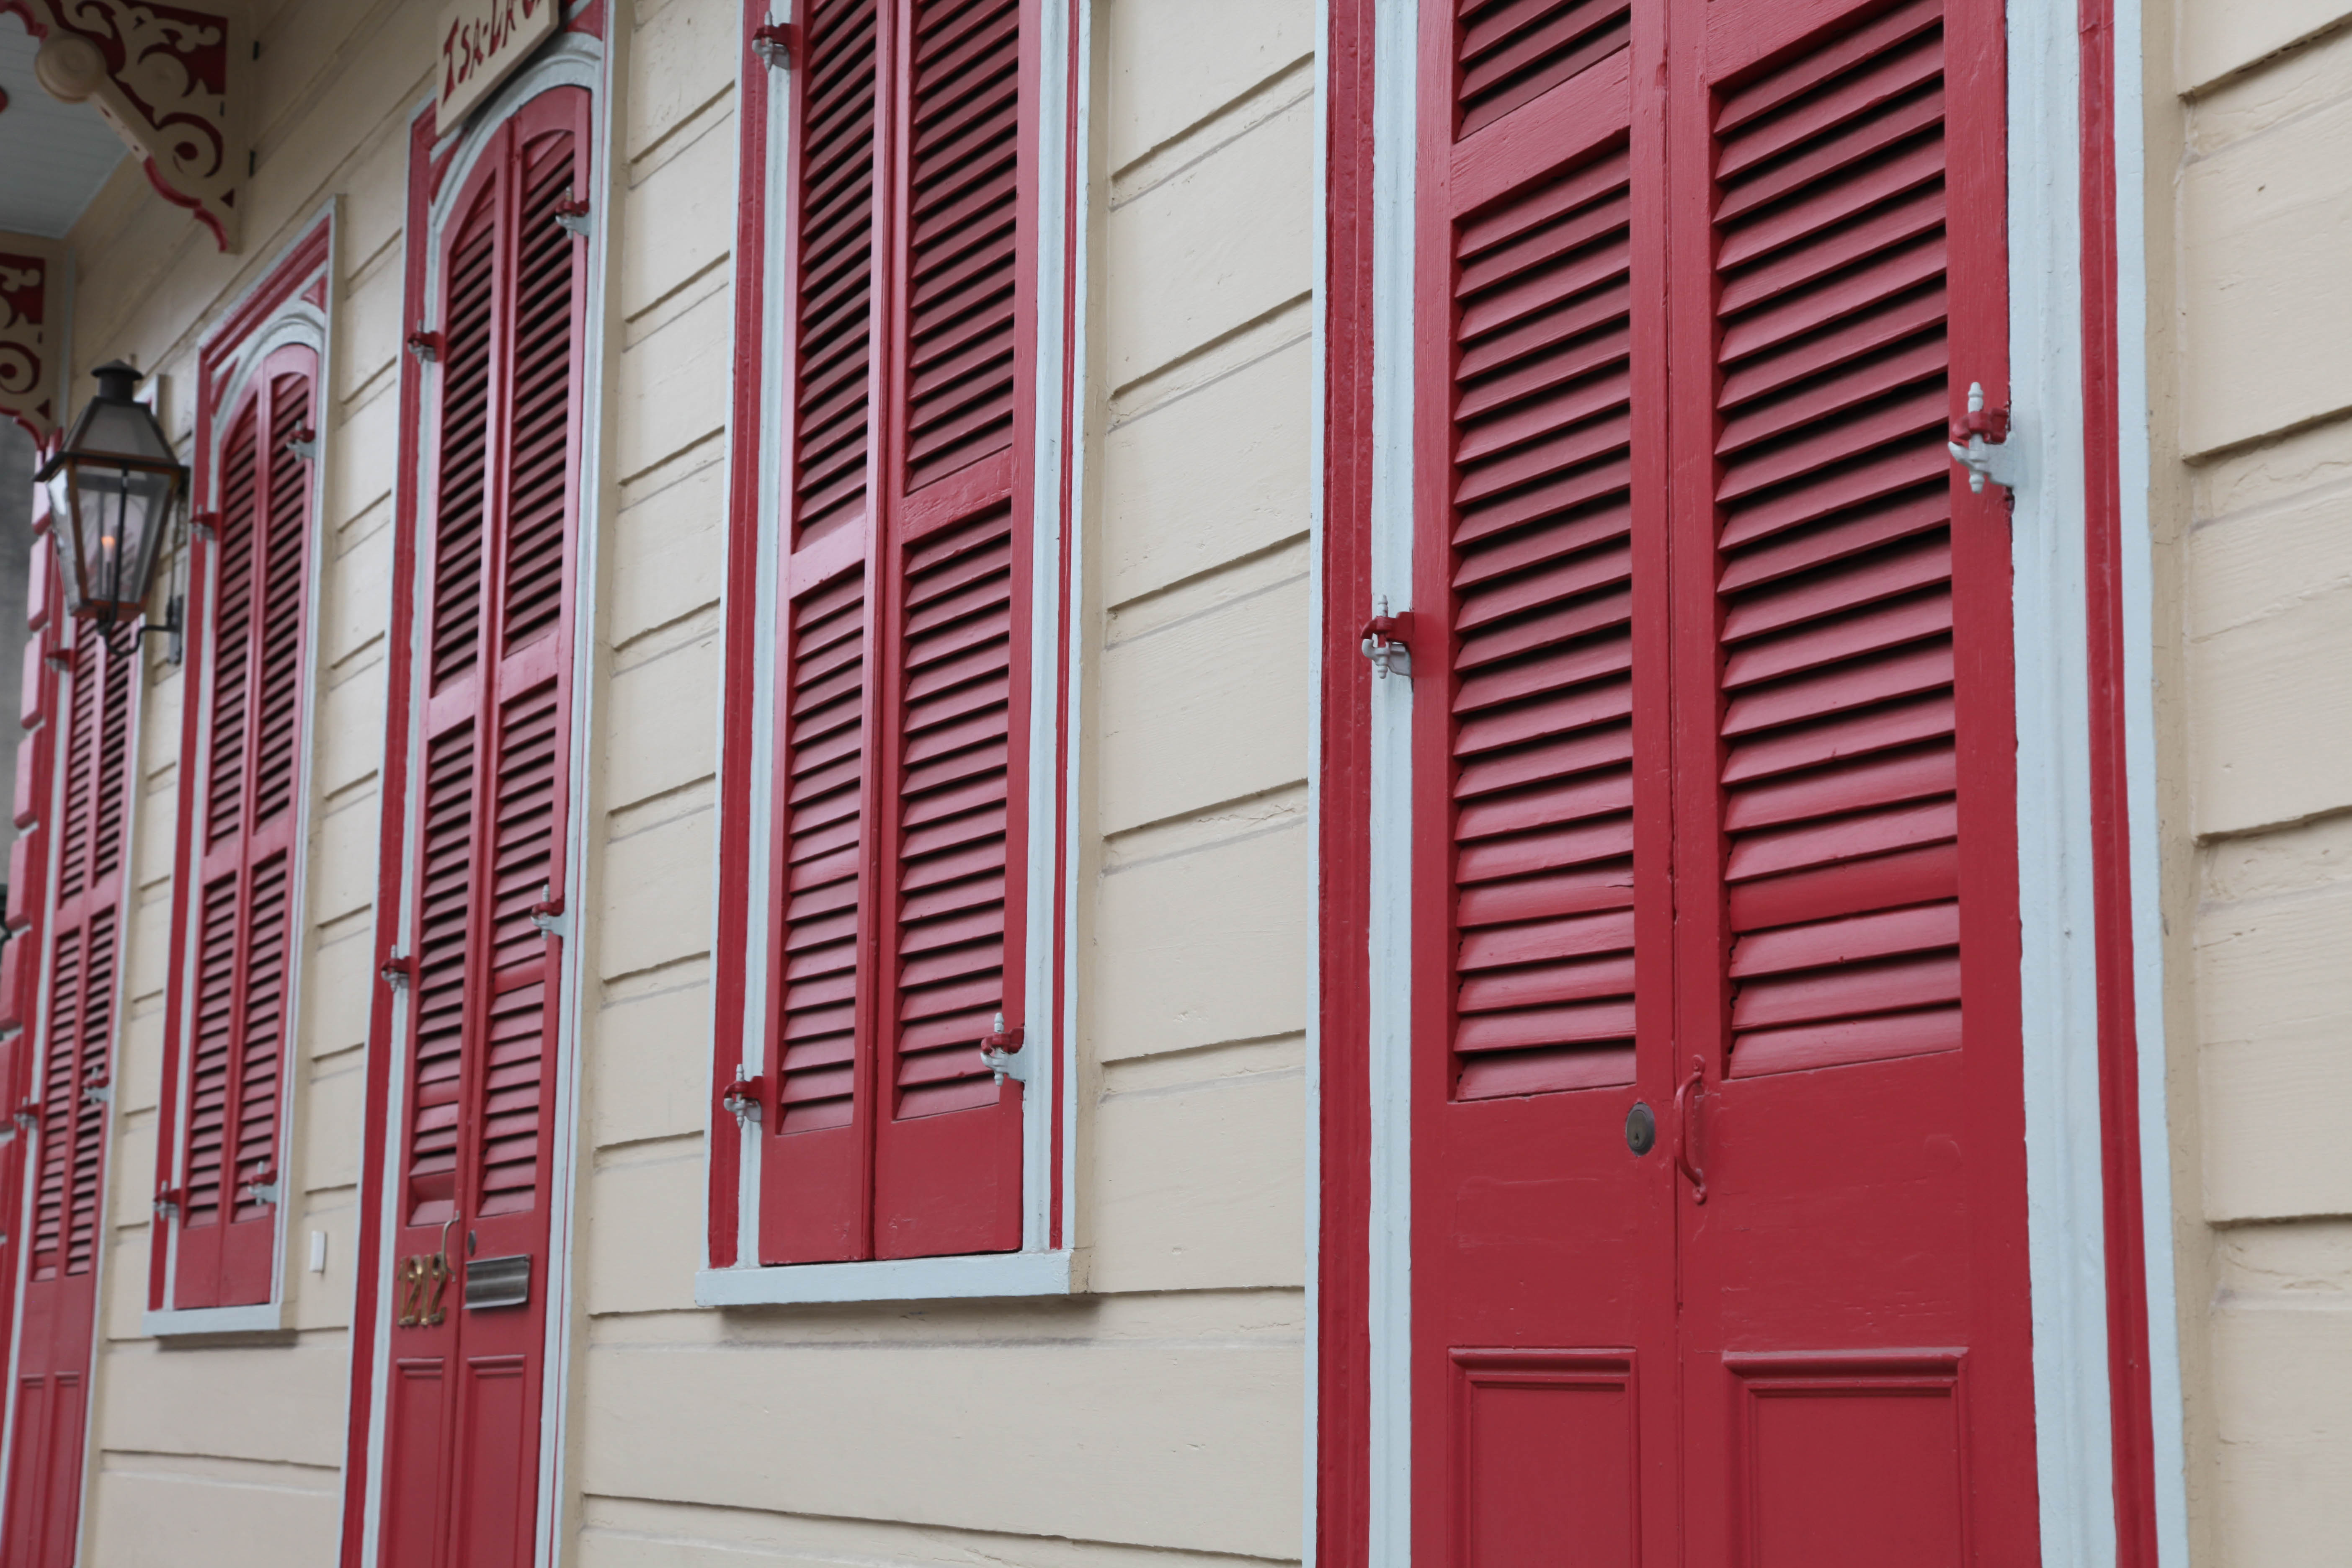 Faubourg Marigny